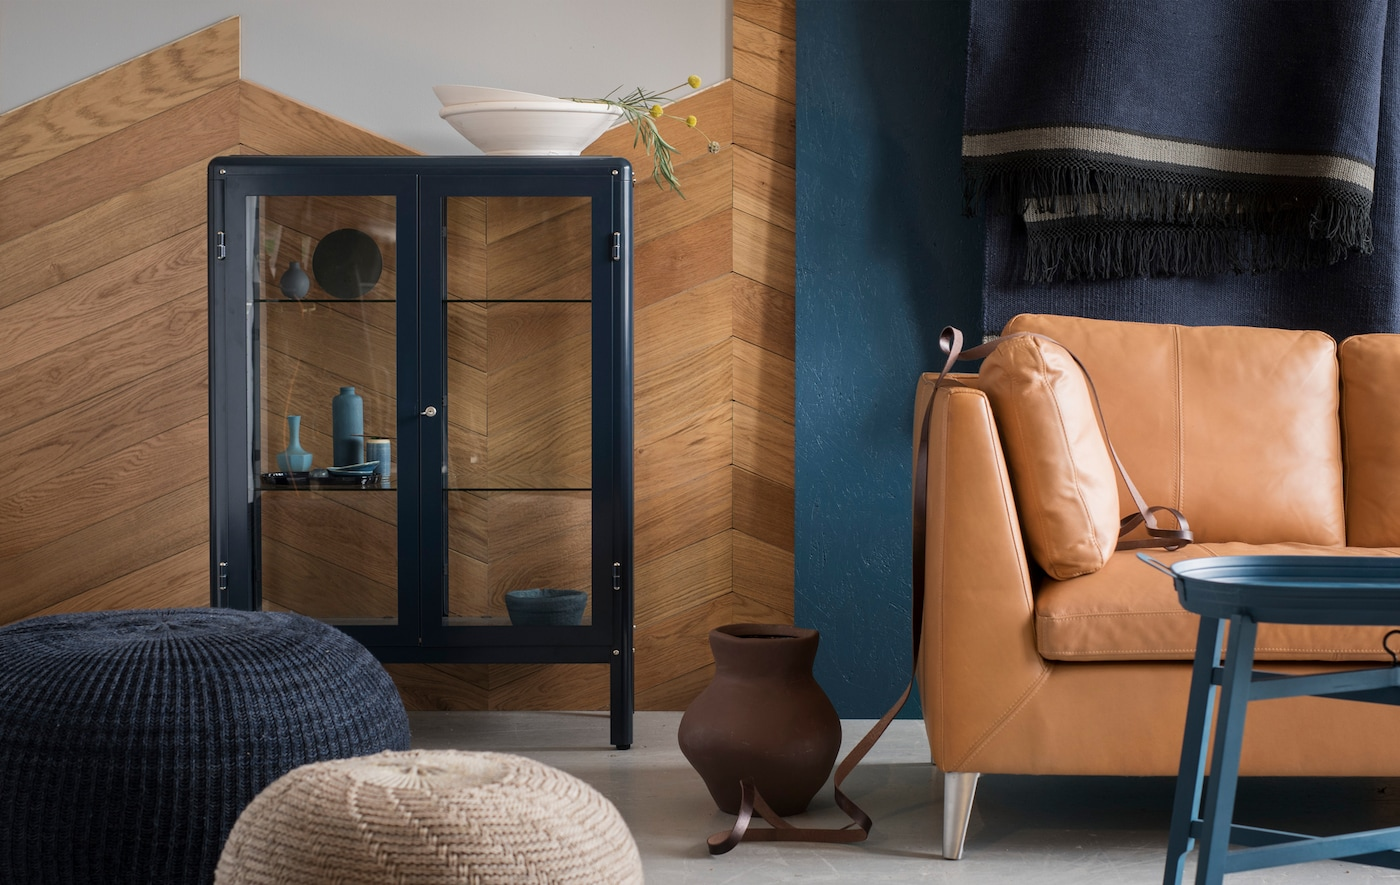 Let a mix of earthy tones, blue accents and authentic materials set the style for spring. Go for a combo of handmade rugs, woven baskets and blue accents. Display your favourites in a glass-door cabinet. Try IKEA FABRIKÖR glass-door cabinet in blue!